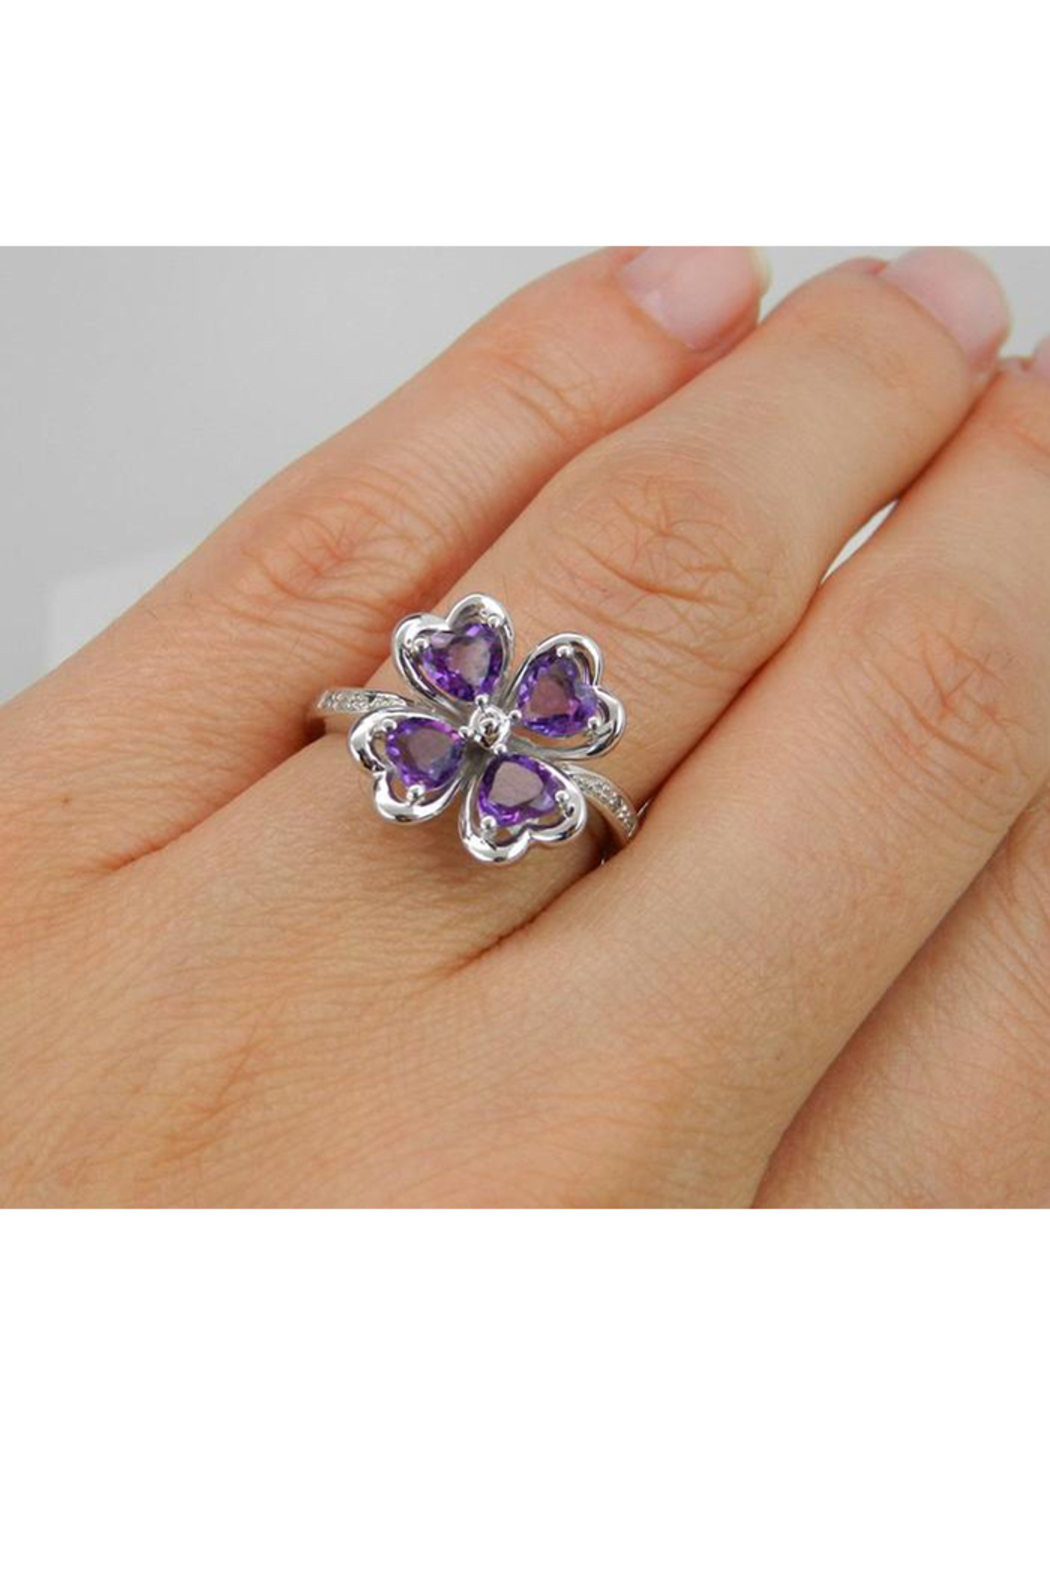 Margolin & Co Amethyst an Diamond Ring, Heart Amethyst in Clover Design with Diamond Cocktail Ring in White Gold Size 8 February Gem - Back Cropped Image